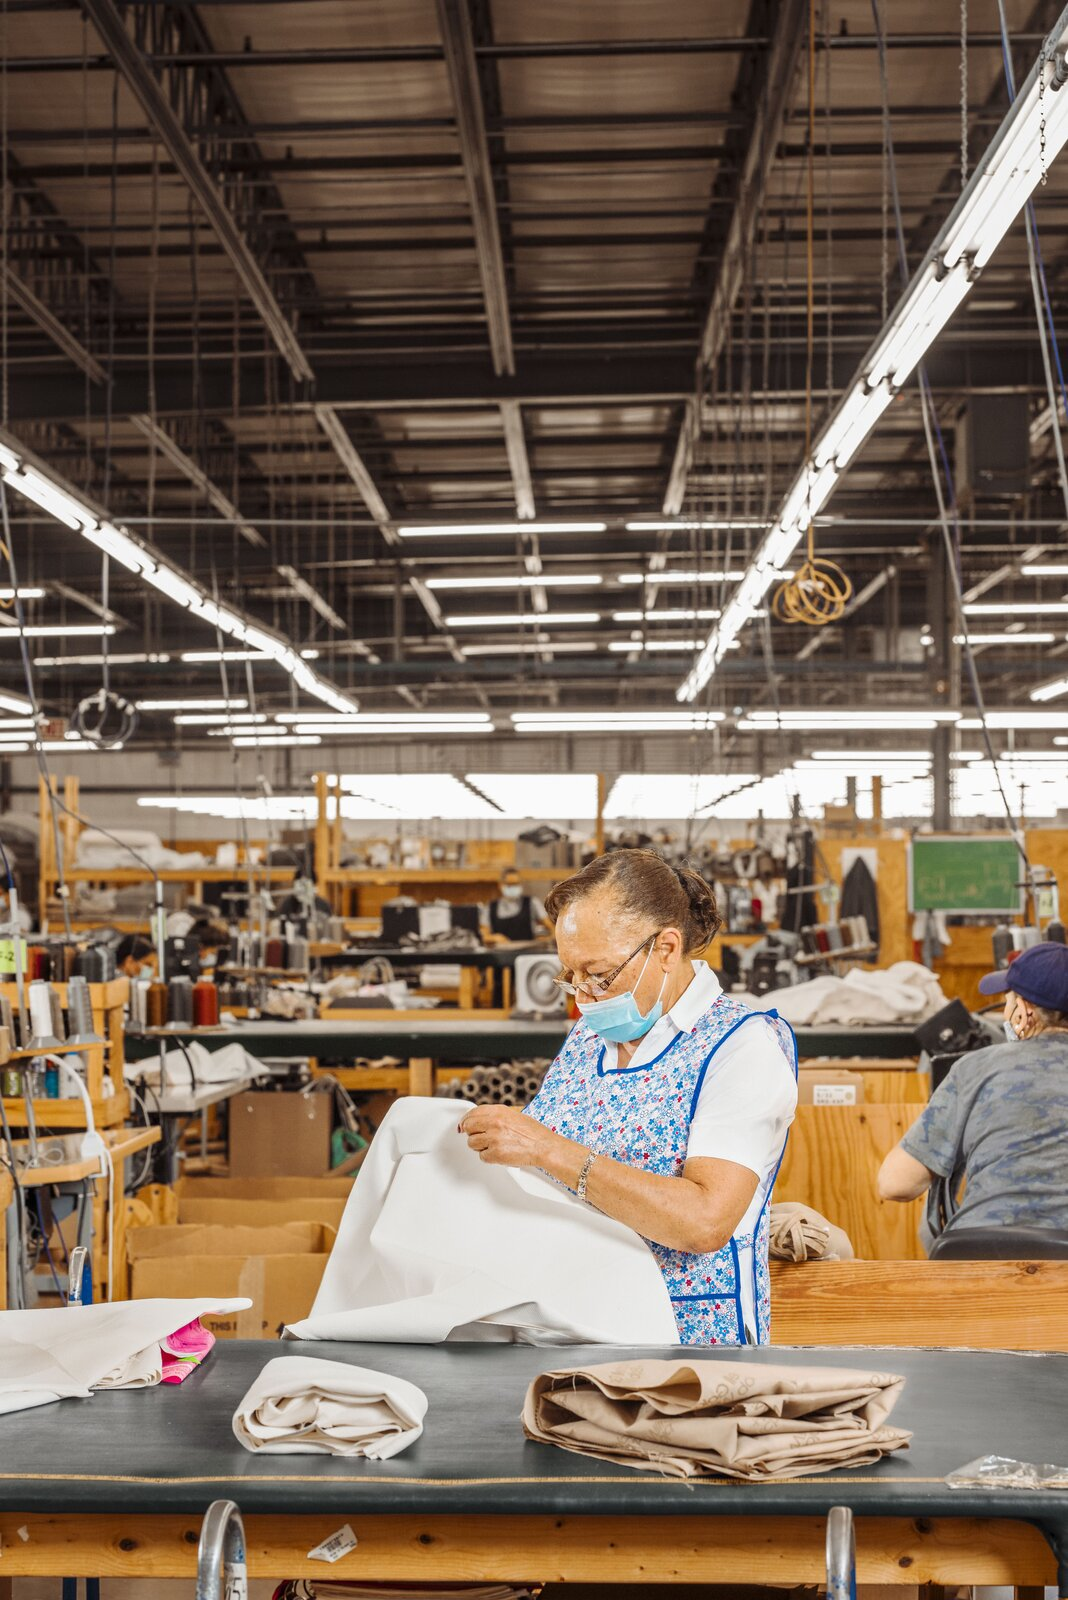 Paulette Jones checks the quality of the sewing and fabric for an Anthony chair at the Mitchell Gold + Bob Williams factory in Taylorsville, North Carolina.